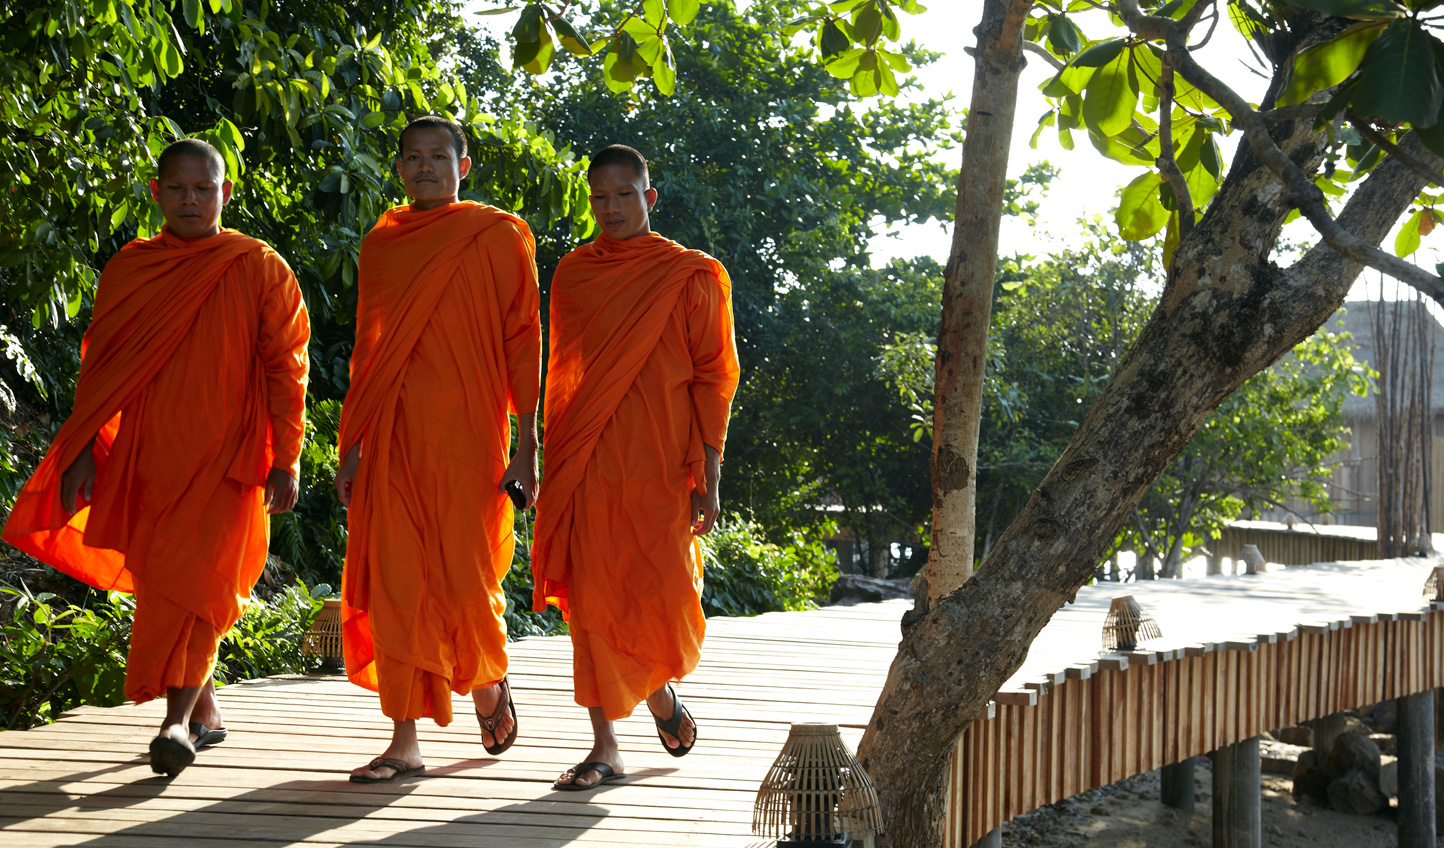 Pay your respects and offer up alms to the local monks